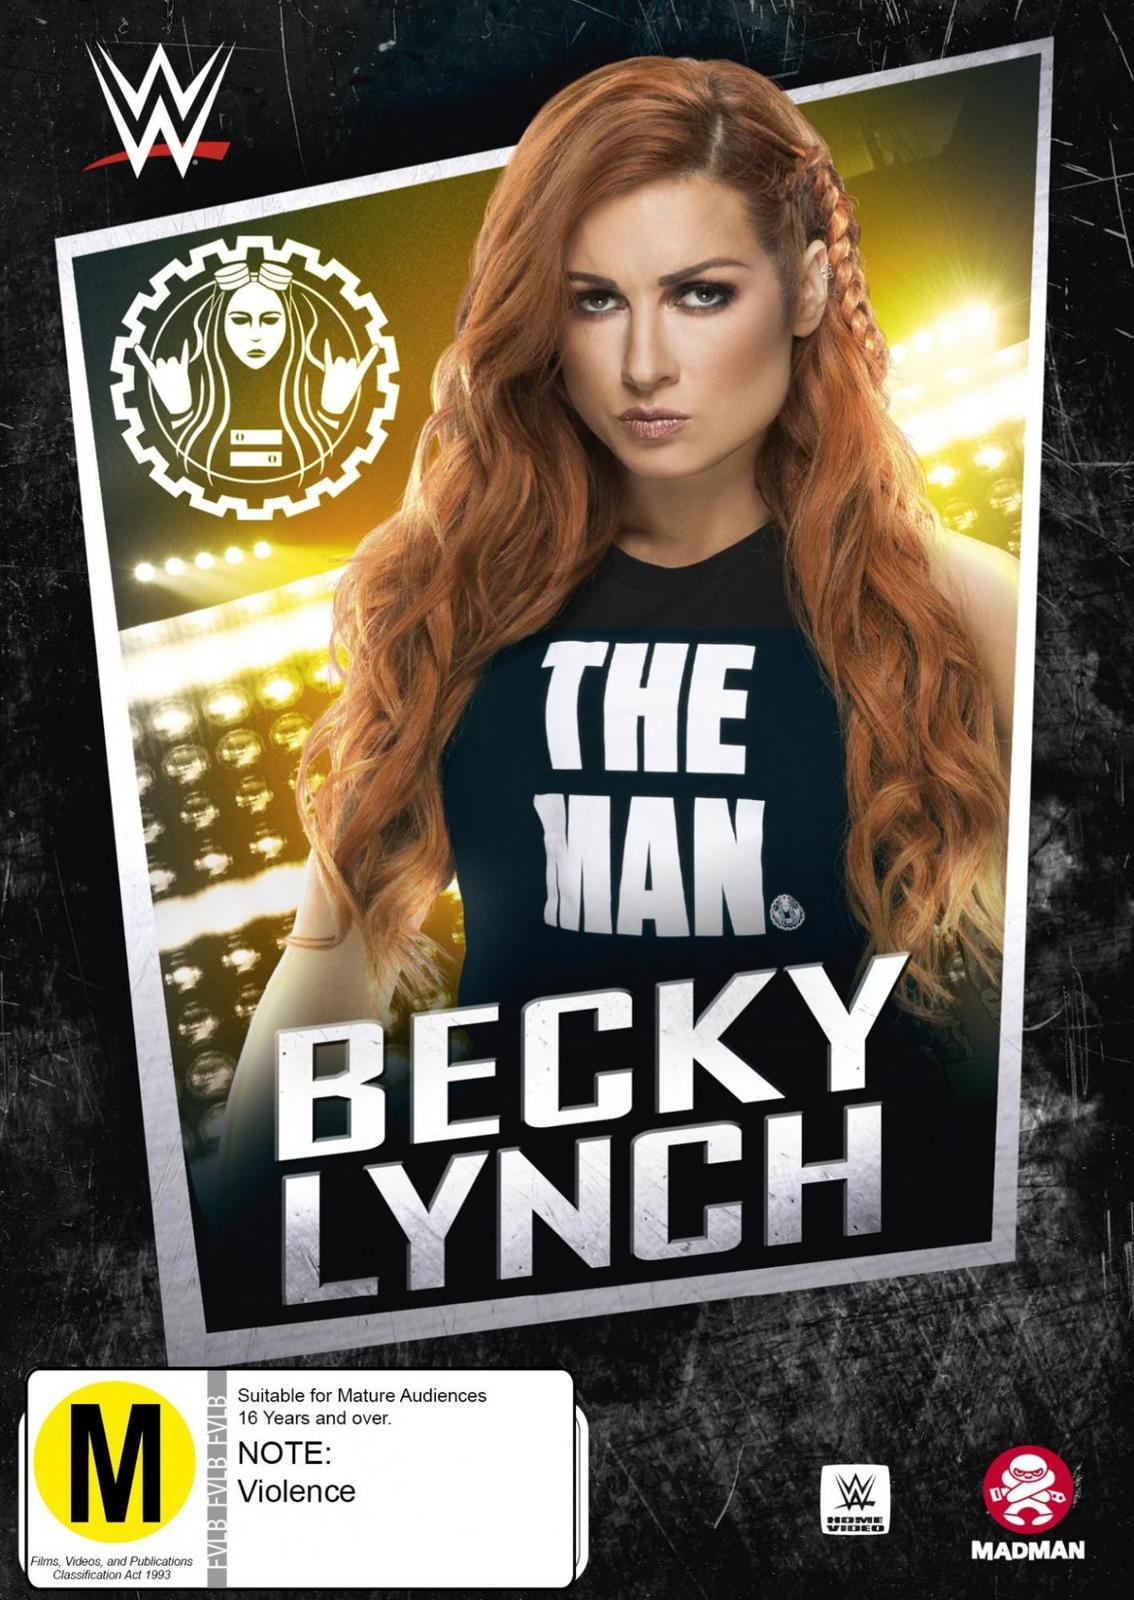 WWE: Becky Lynch - The Man on DVD image